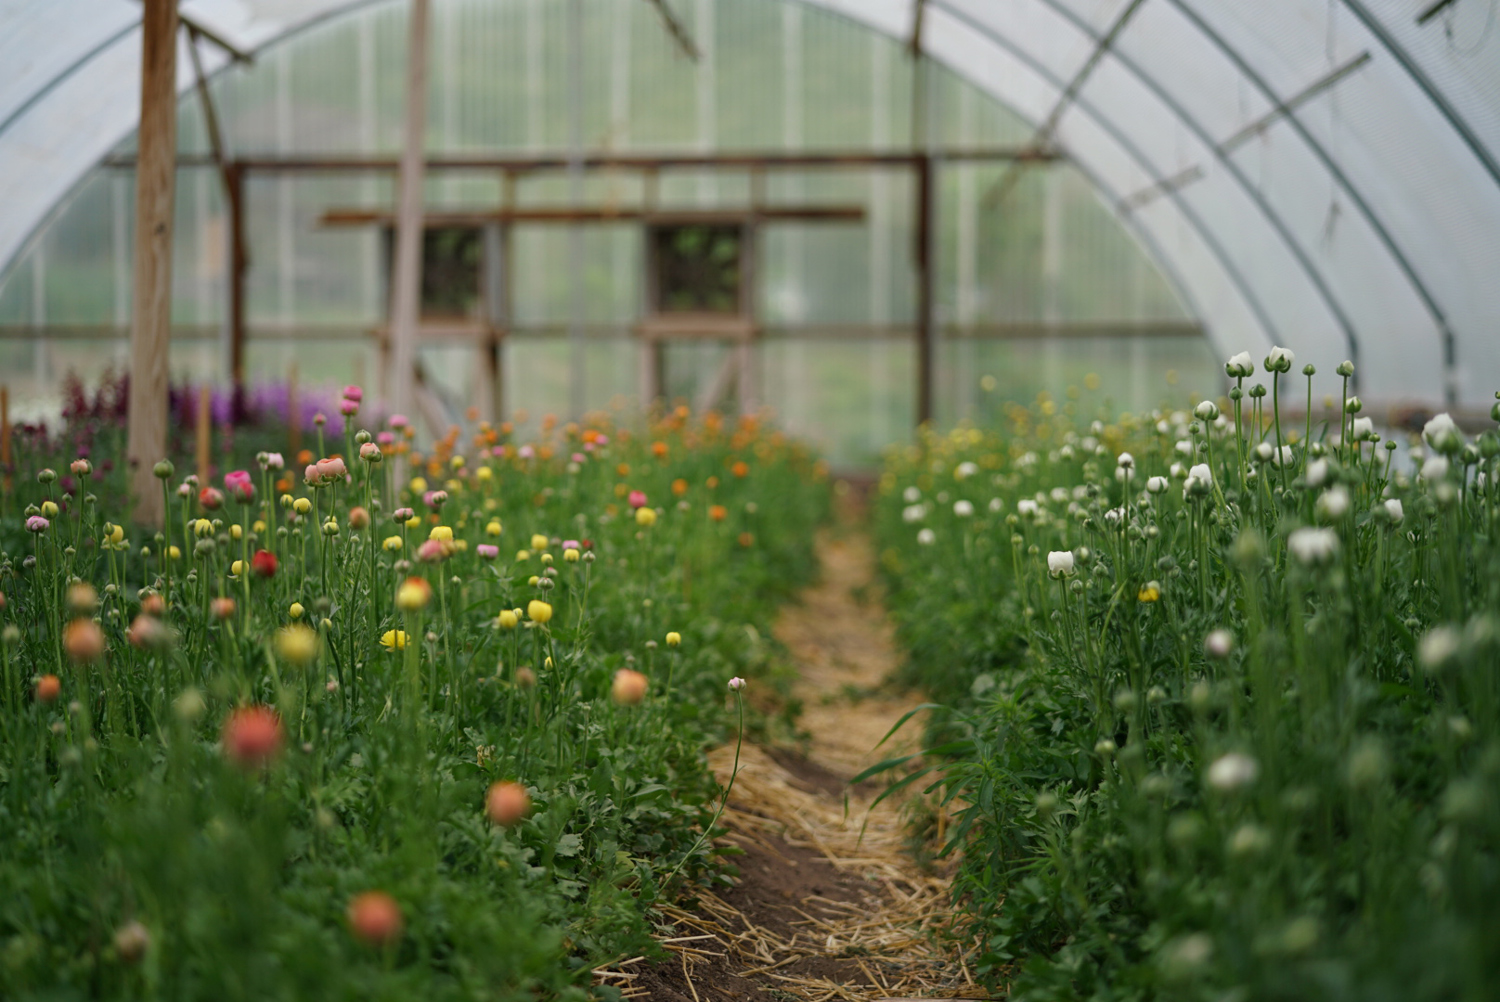 Ranunculus in the hoop mid-May. 'La Belle Champagne' on the left, 'Gigi White' on the right.  Image ©   Nelson Esseveld.